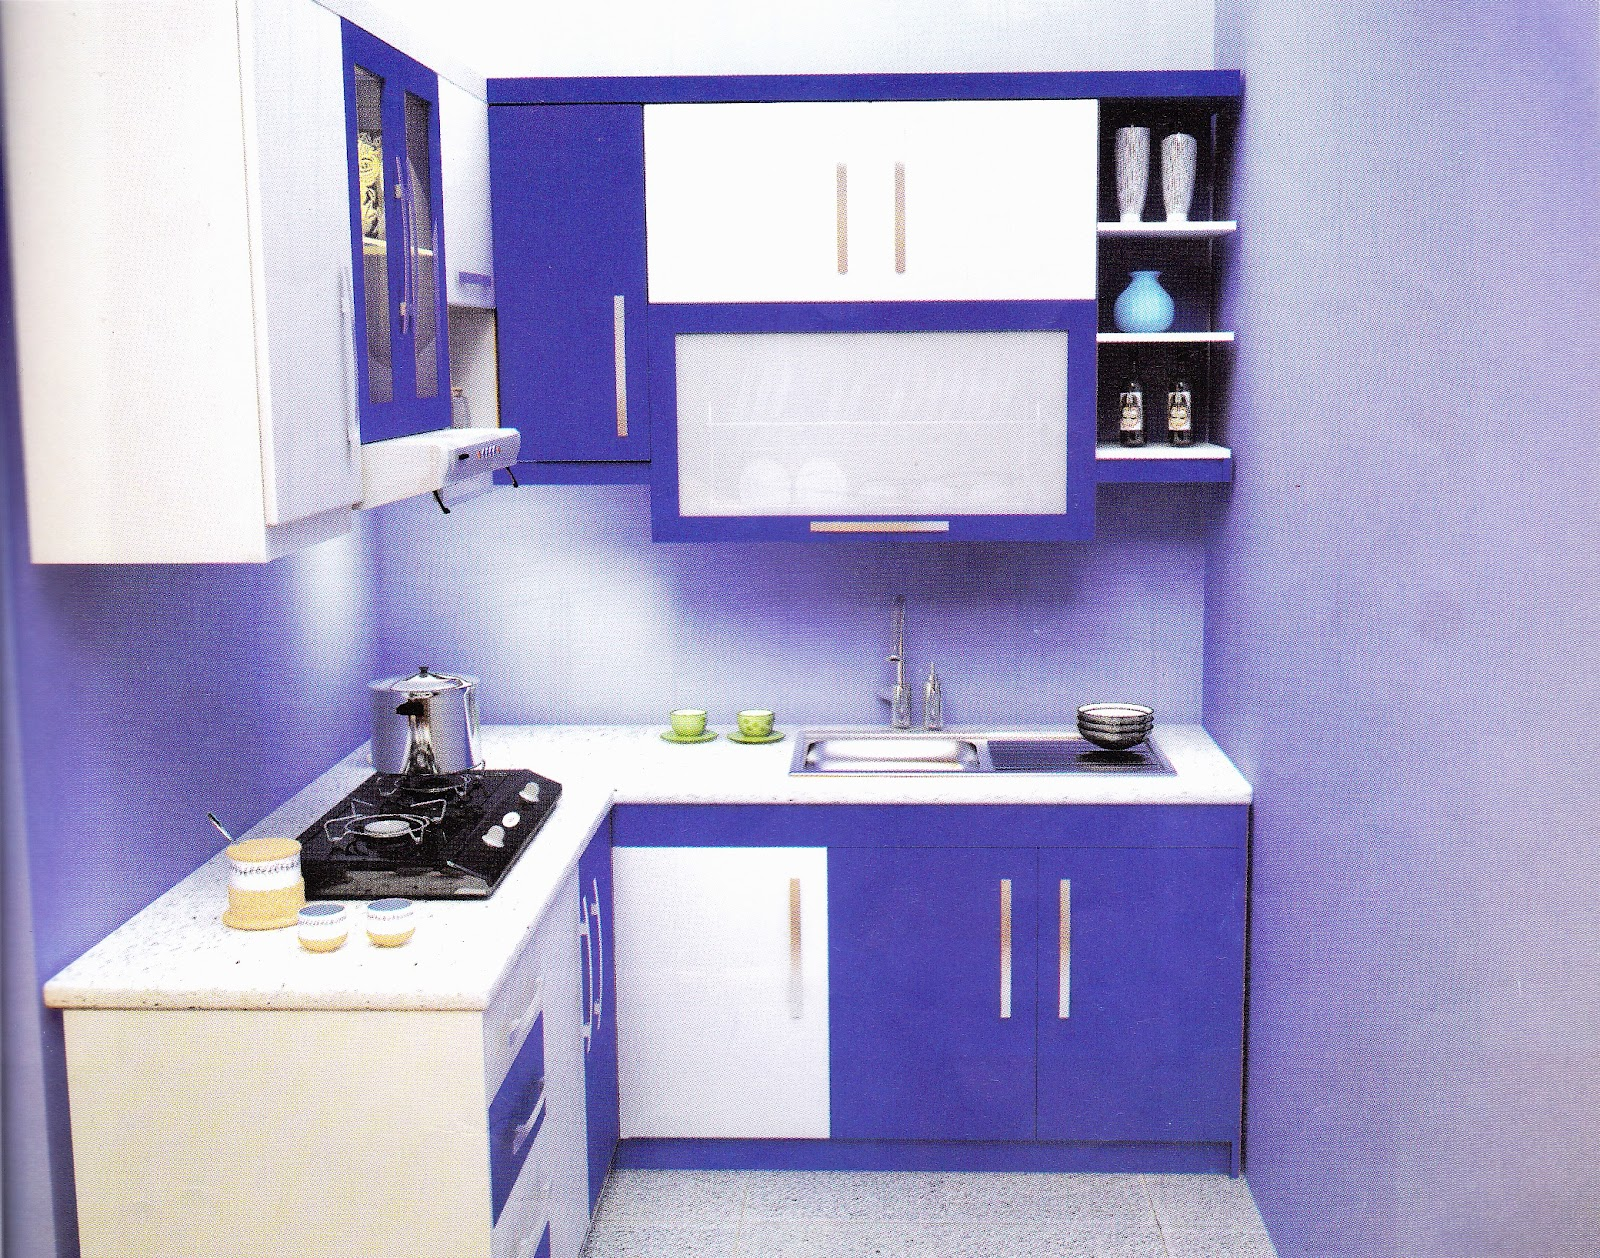 Apartment kitchen set homesfeed for Kitchen set 2015